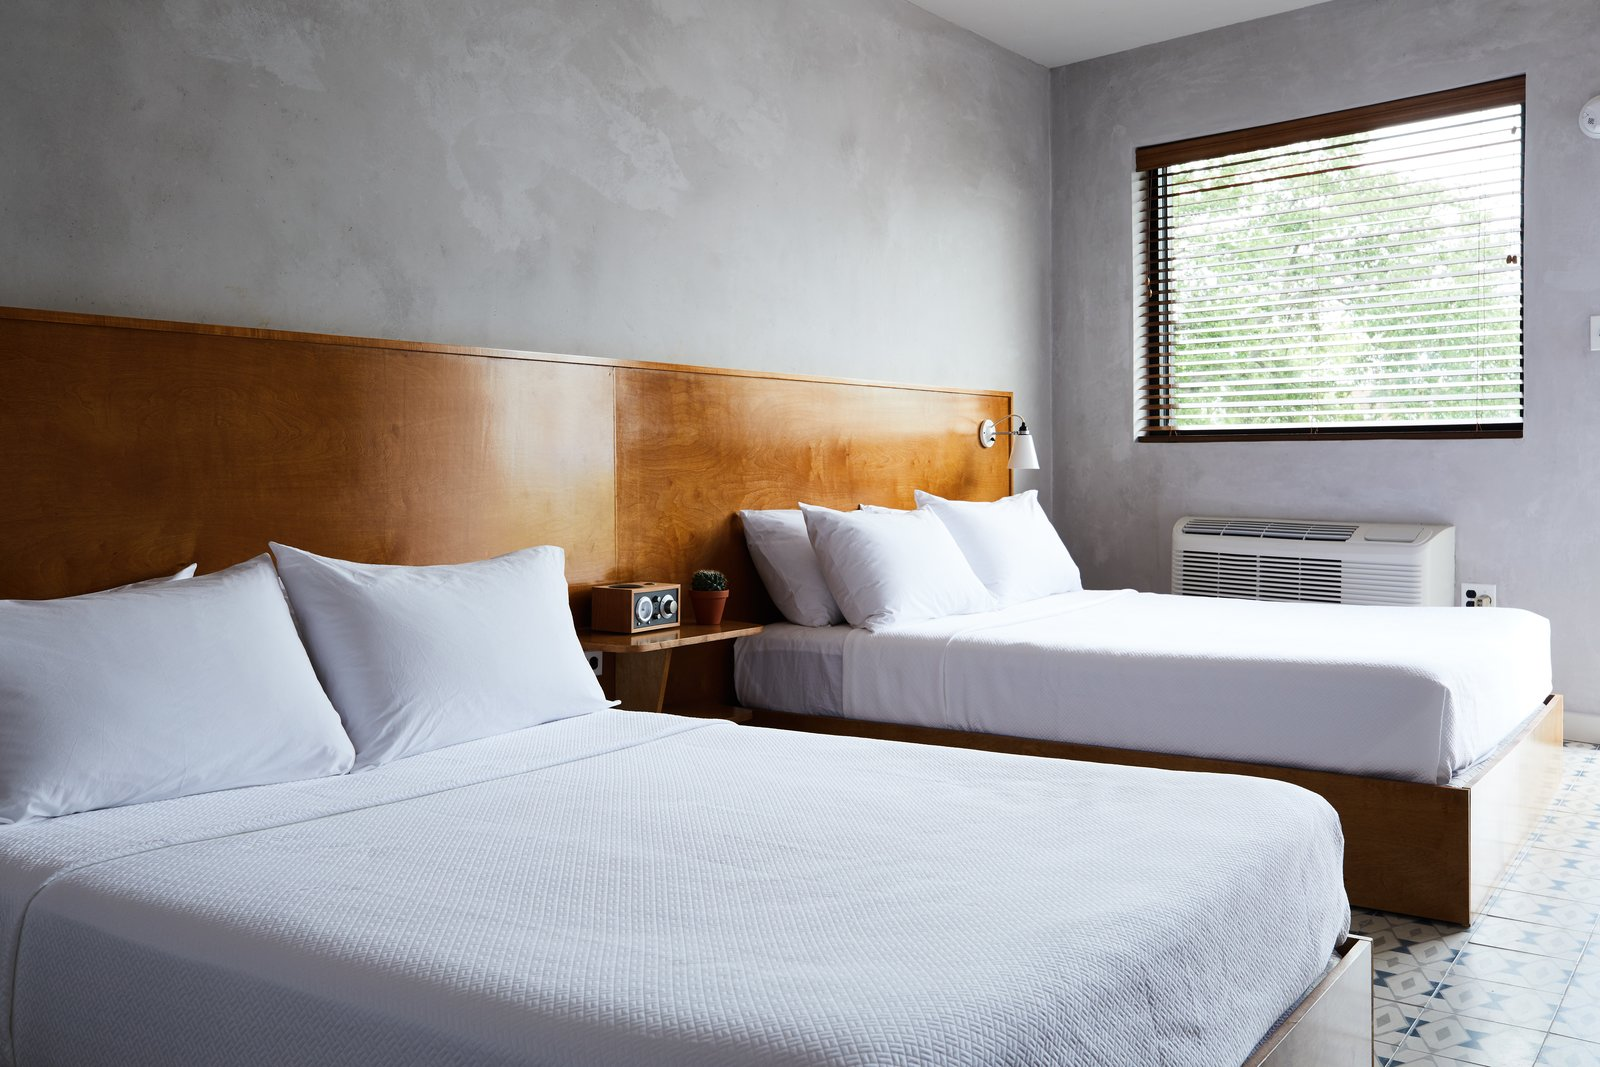 Bedroom, Bed, Night Stands, Wall Lighting, and Ceramic Tile Floor The Double Queen Guest Room's minimalist interiors include a custom, double platform bed, ceramic tile floors, and troweled concrete walls.  Photo 7 of 11 in This Revived New Orleans Motel Has Some Serious Flair